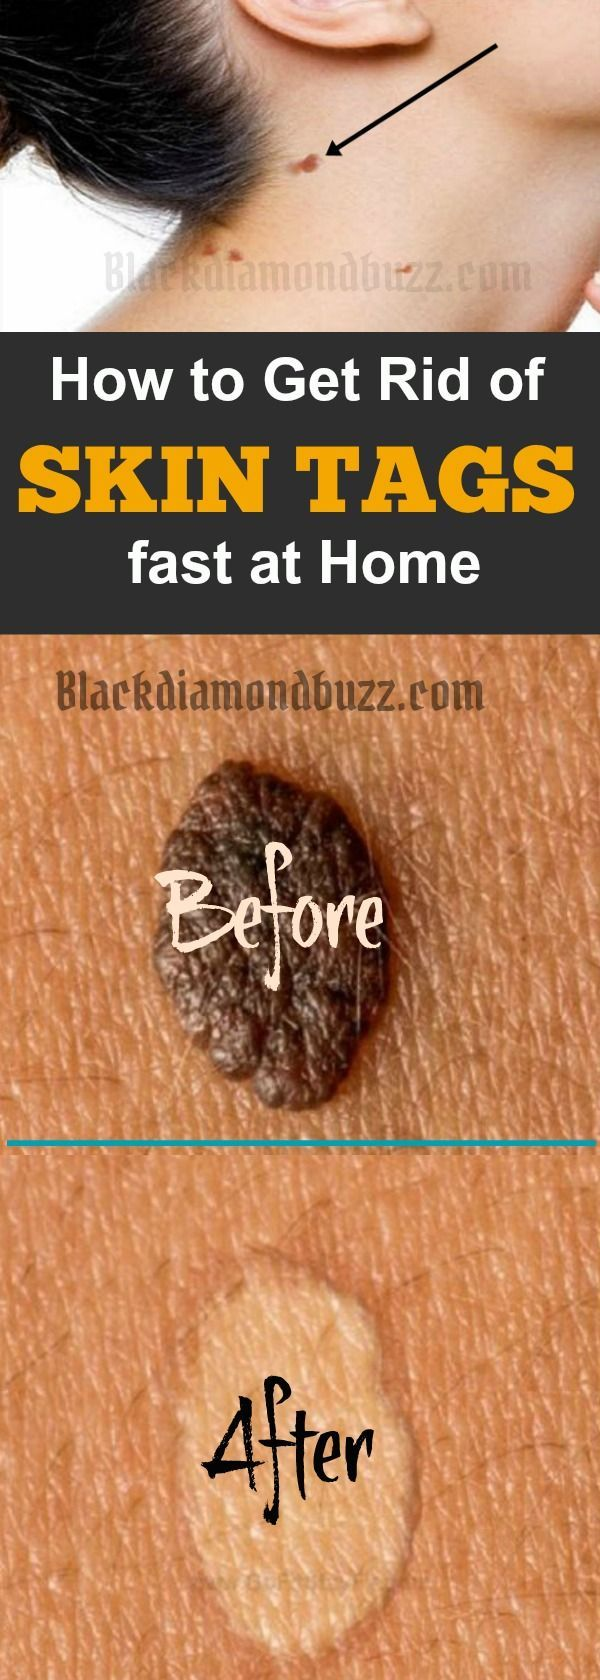 how to get clear skin fast home remedies